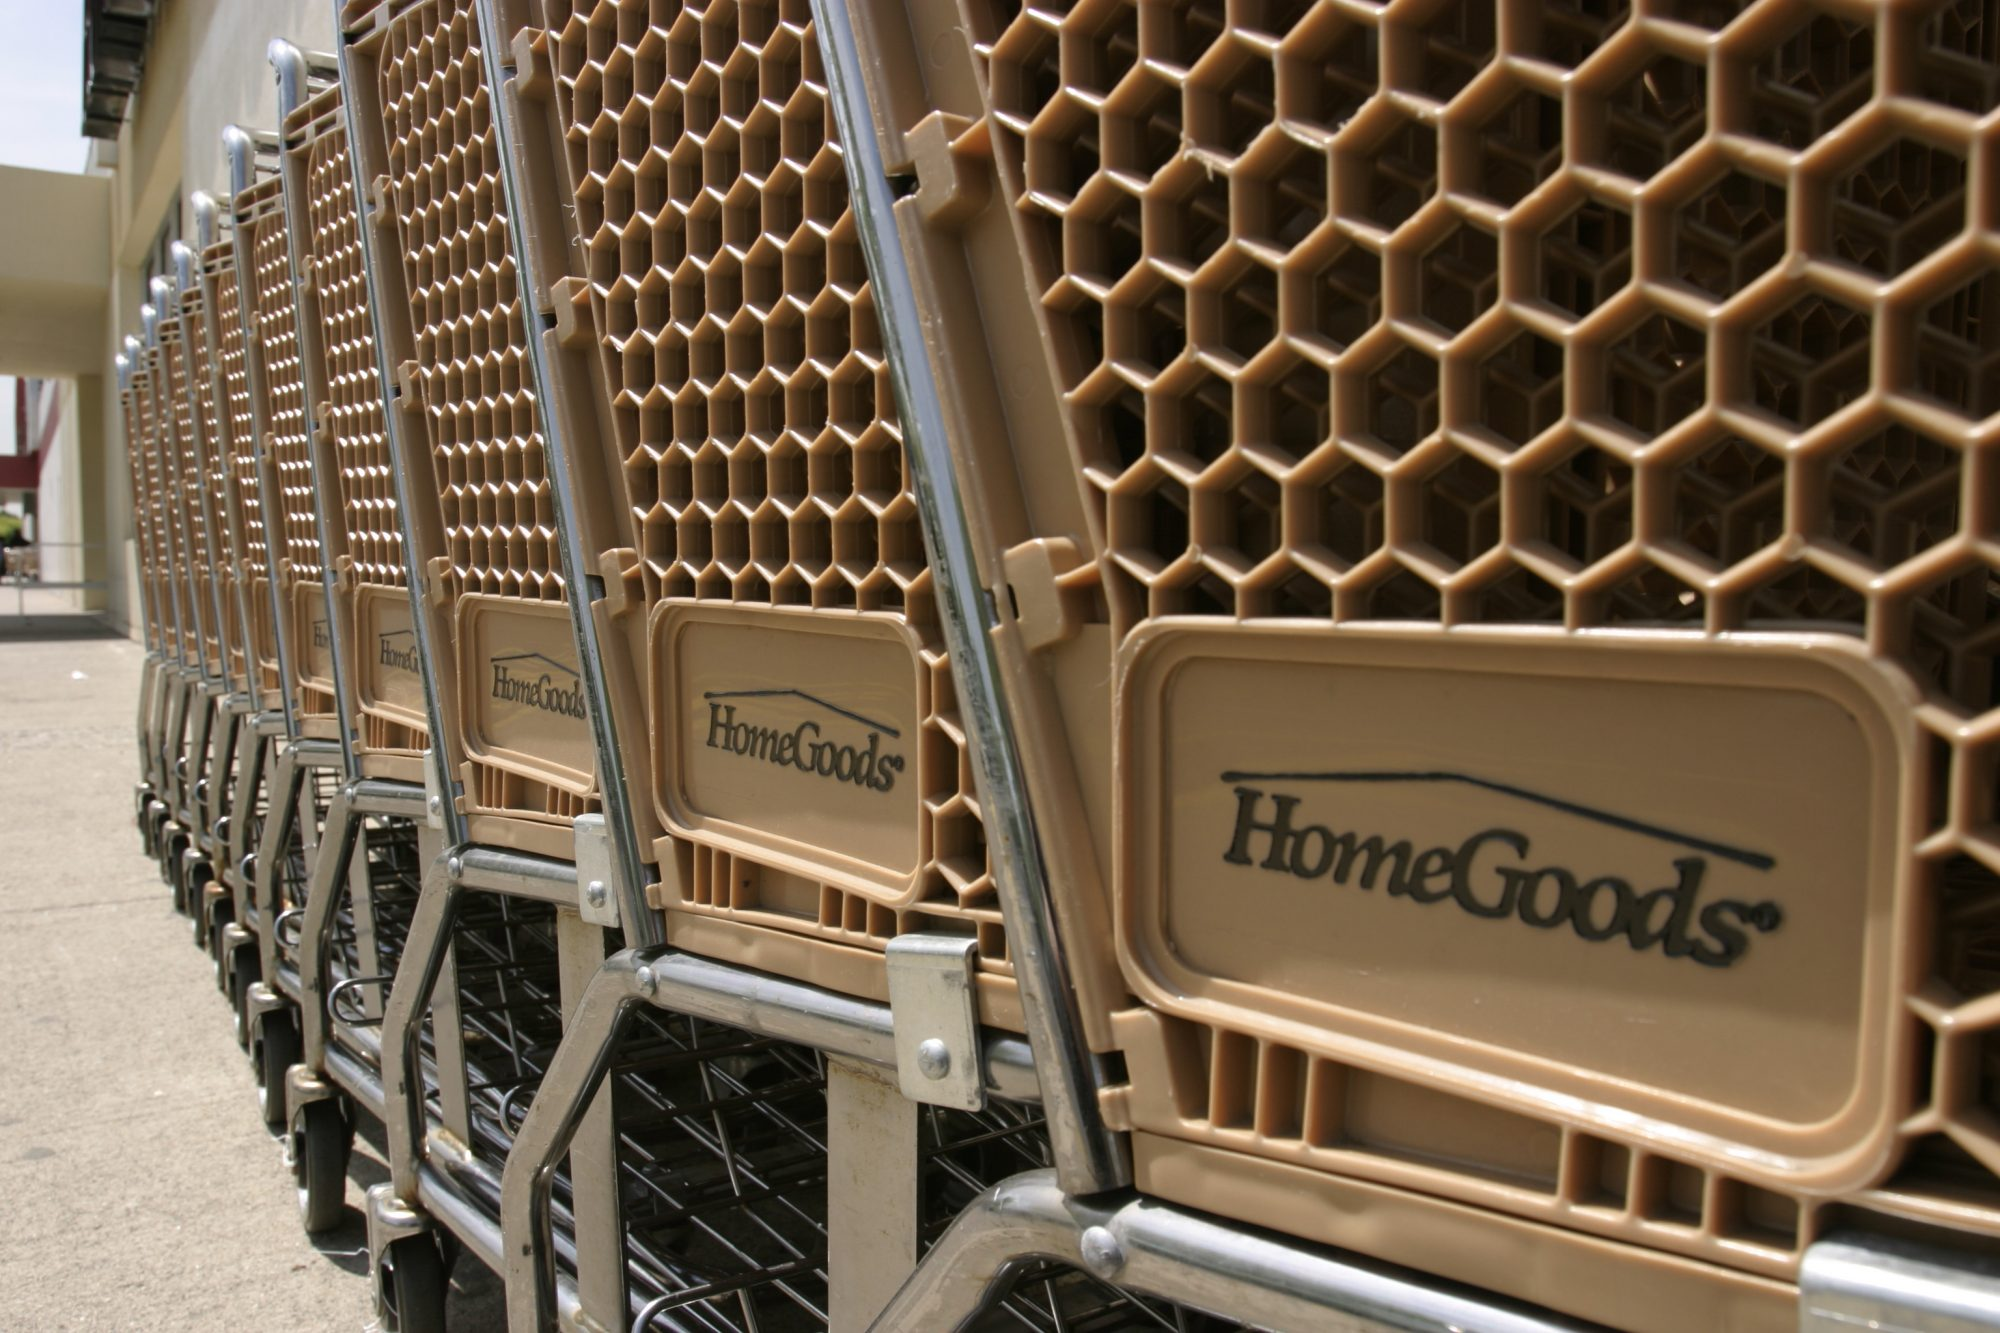 HomeGoods Shopping Carts